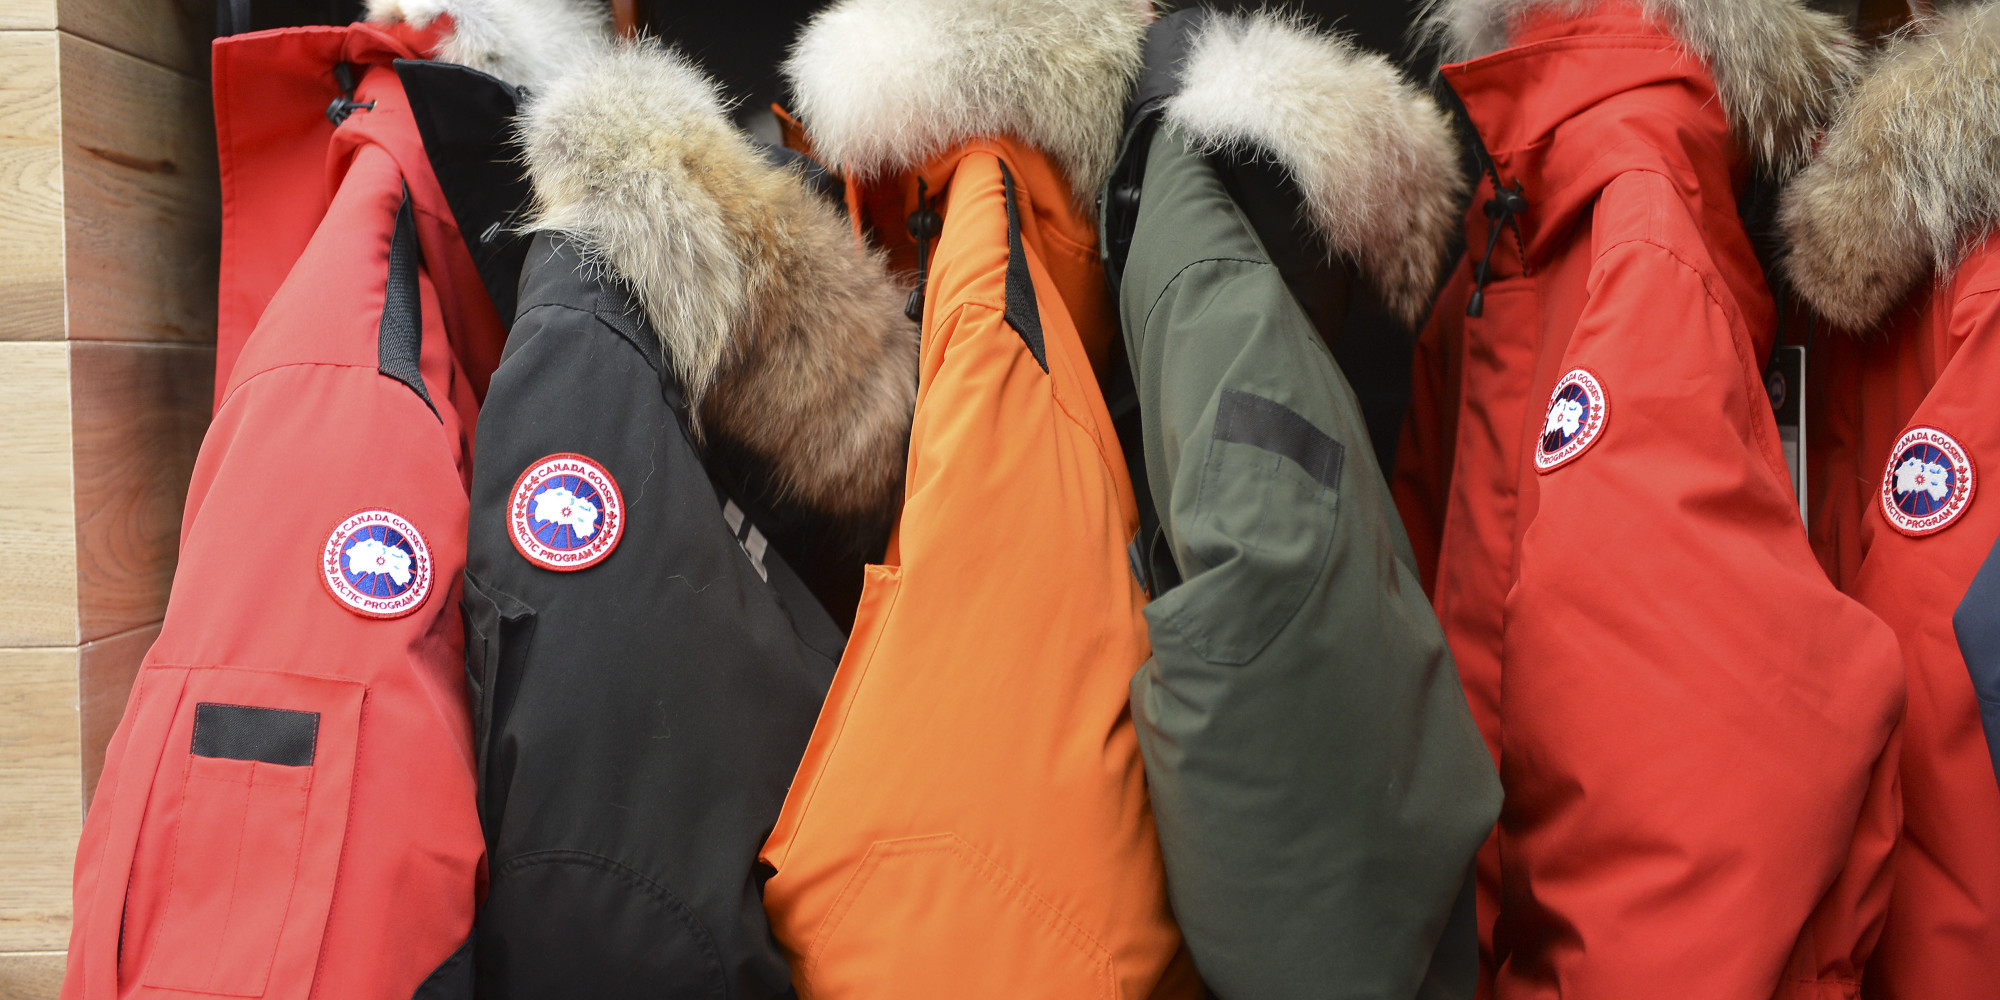 Canada Goose coats online 2016 - Canada Goose Jackets Keep Getting Stolen At Boston University